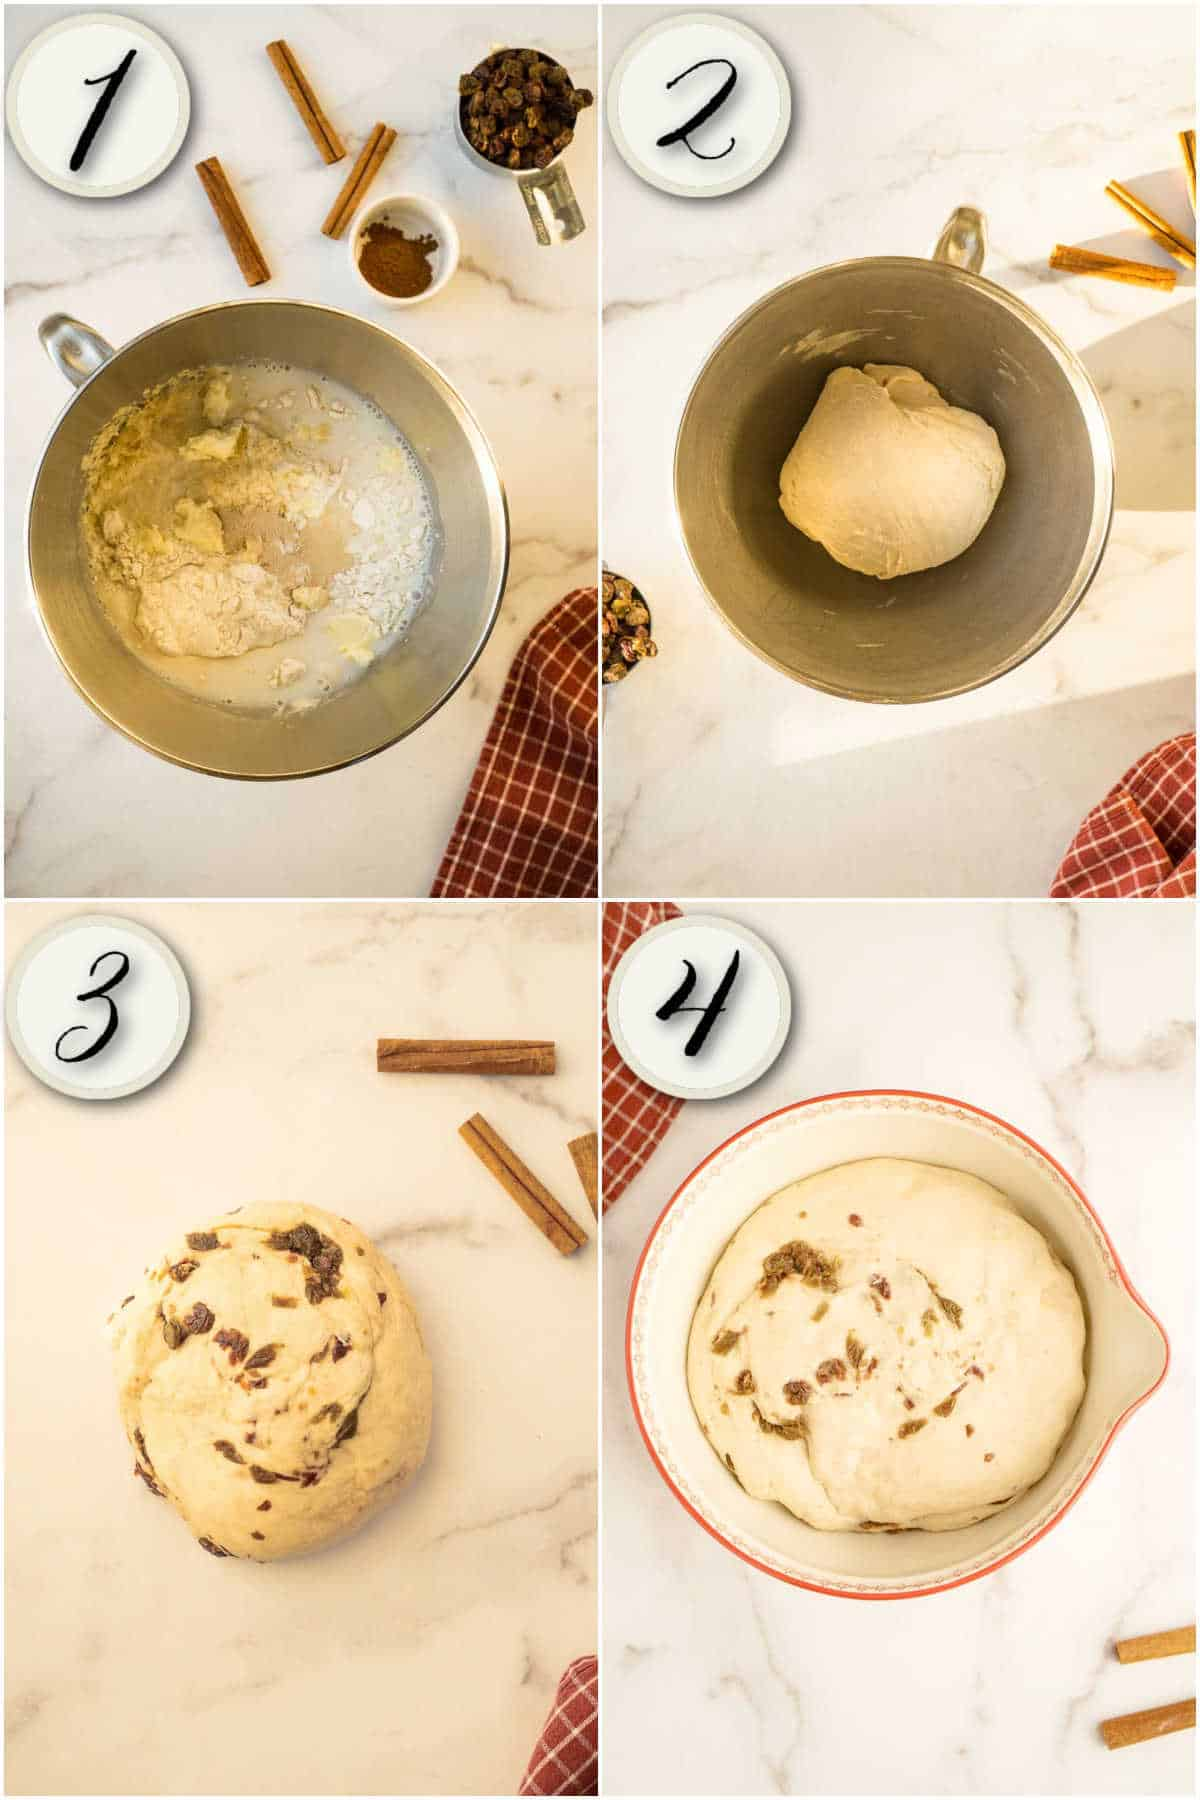 4 images- mixing, kneading, and rising bread dough